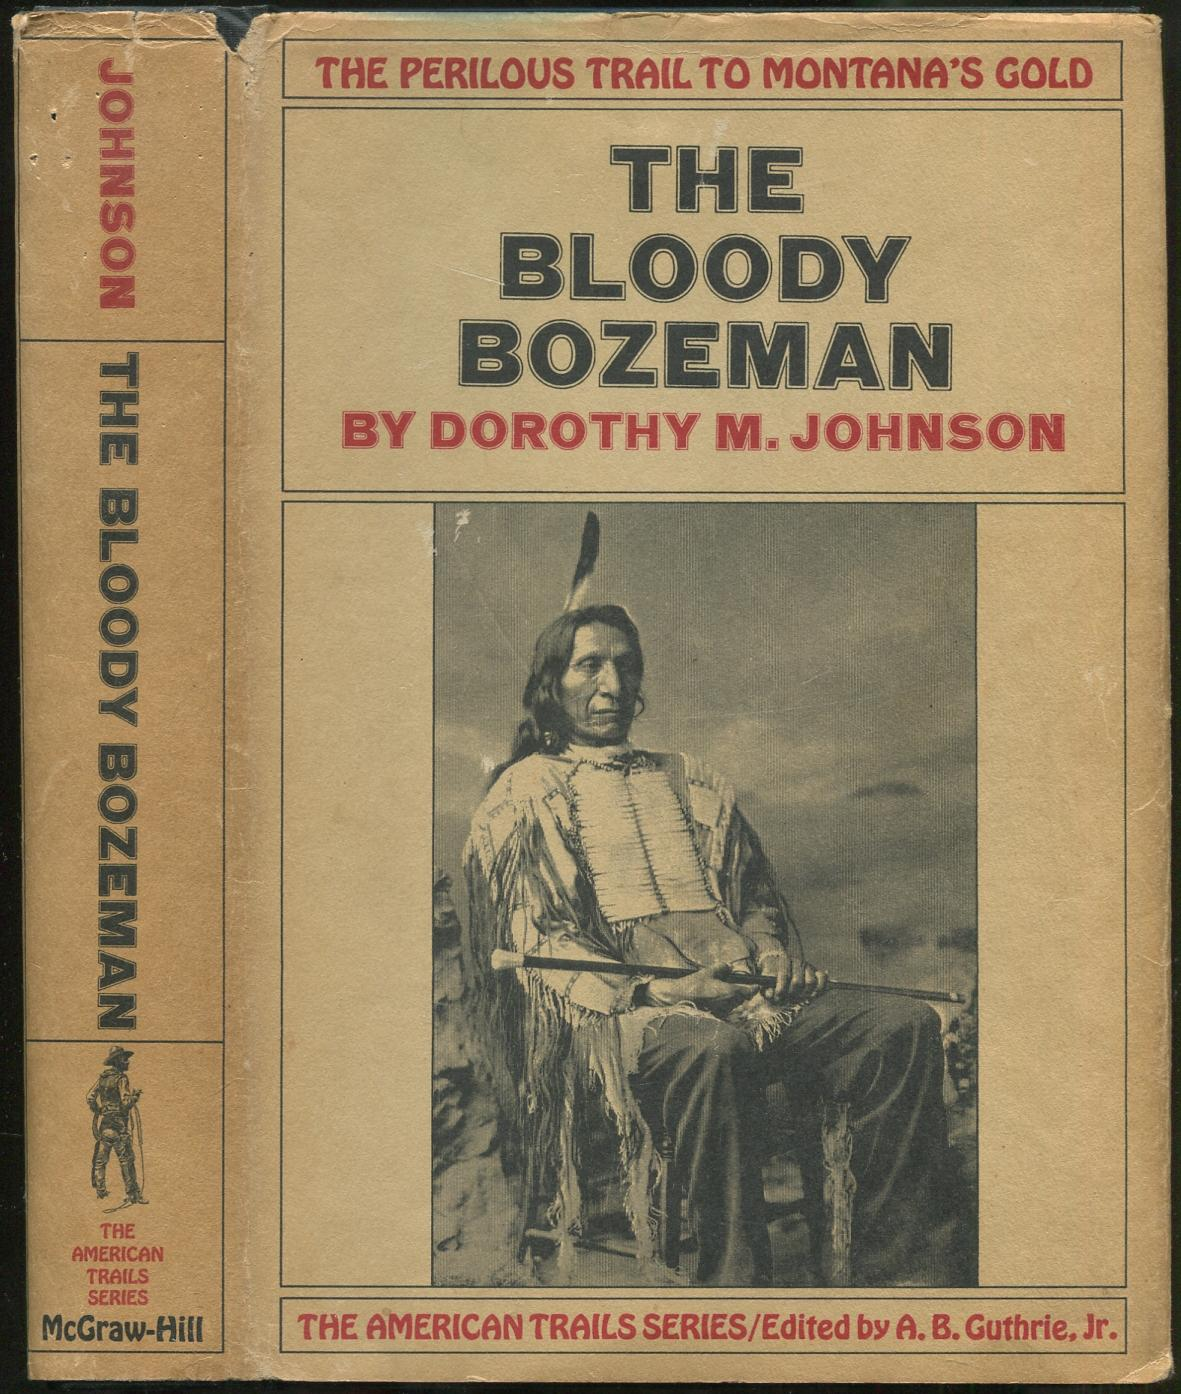 The Bloody Bozeman: The Perilous Trail to: JOHNSON, Dorothy M.